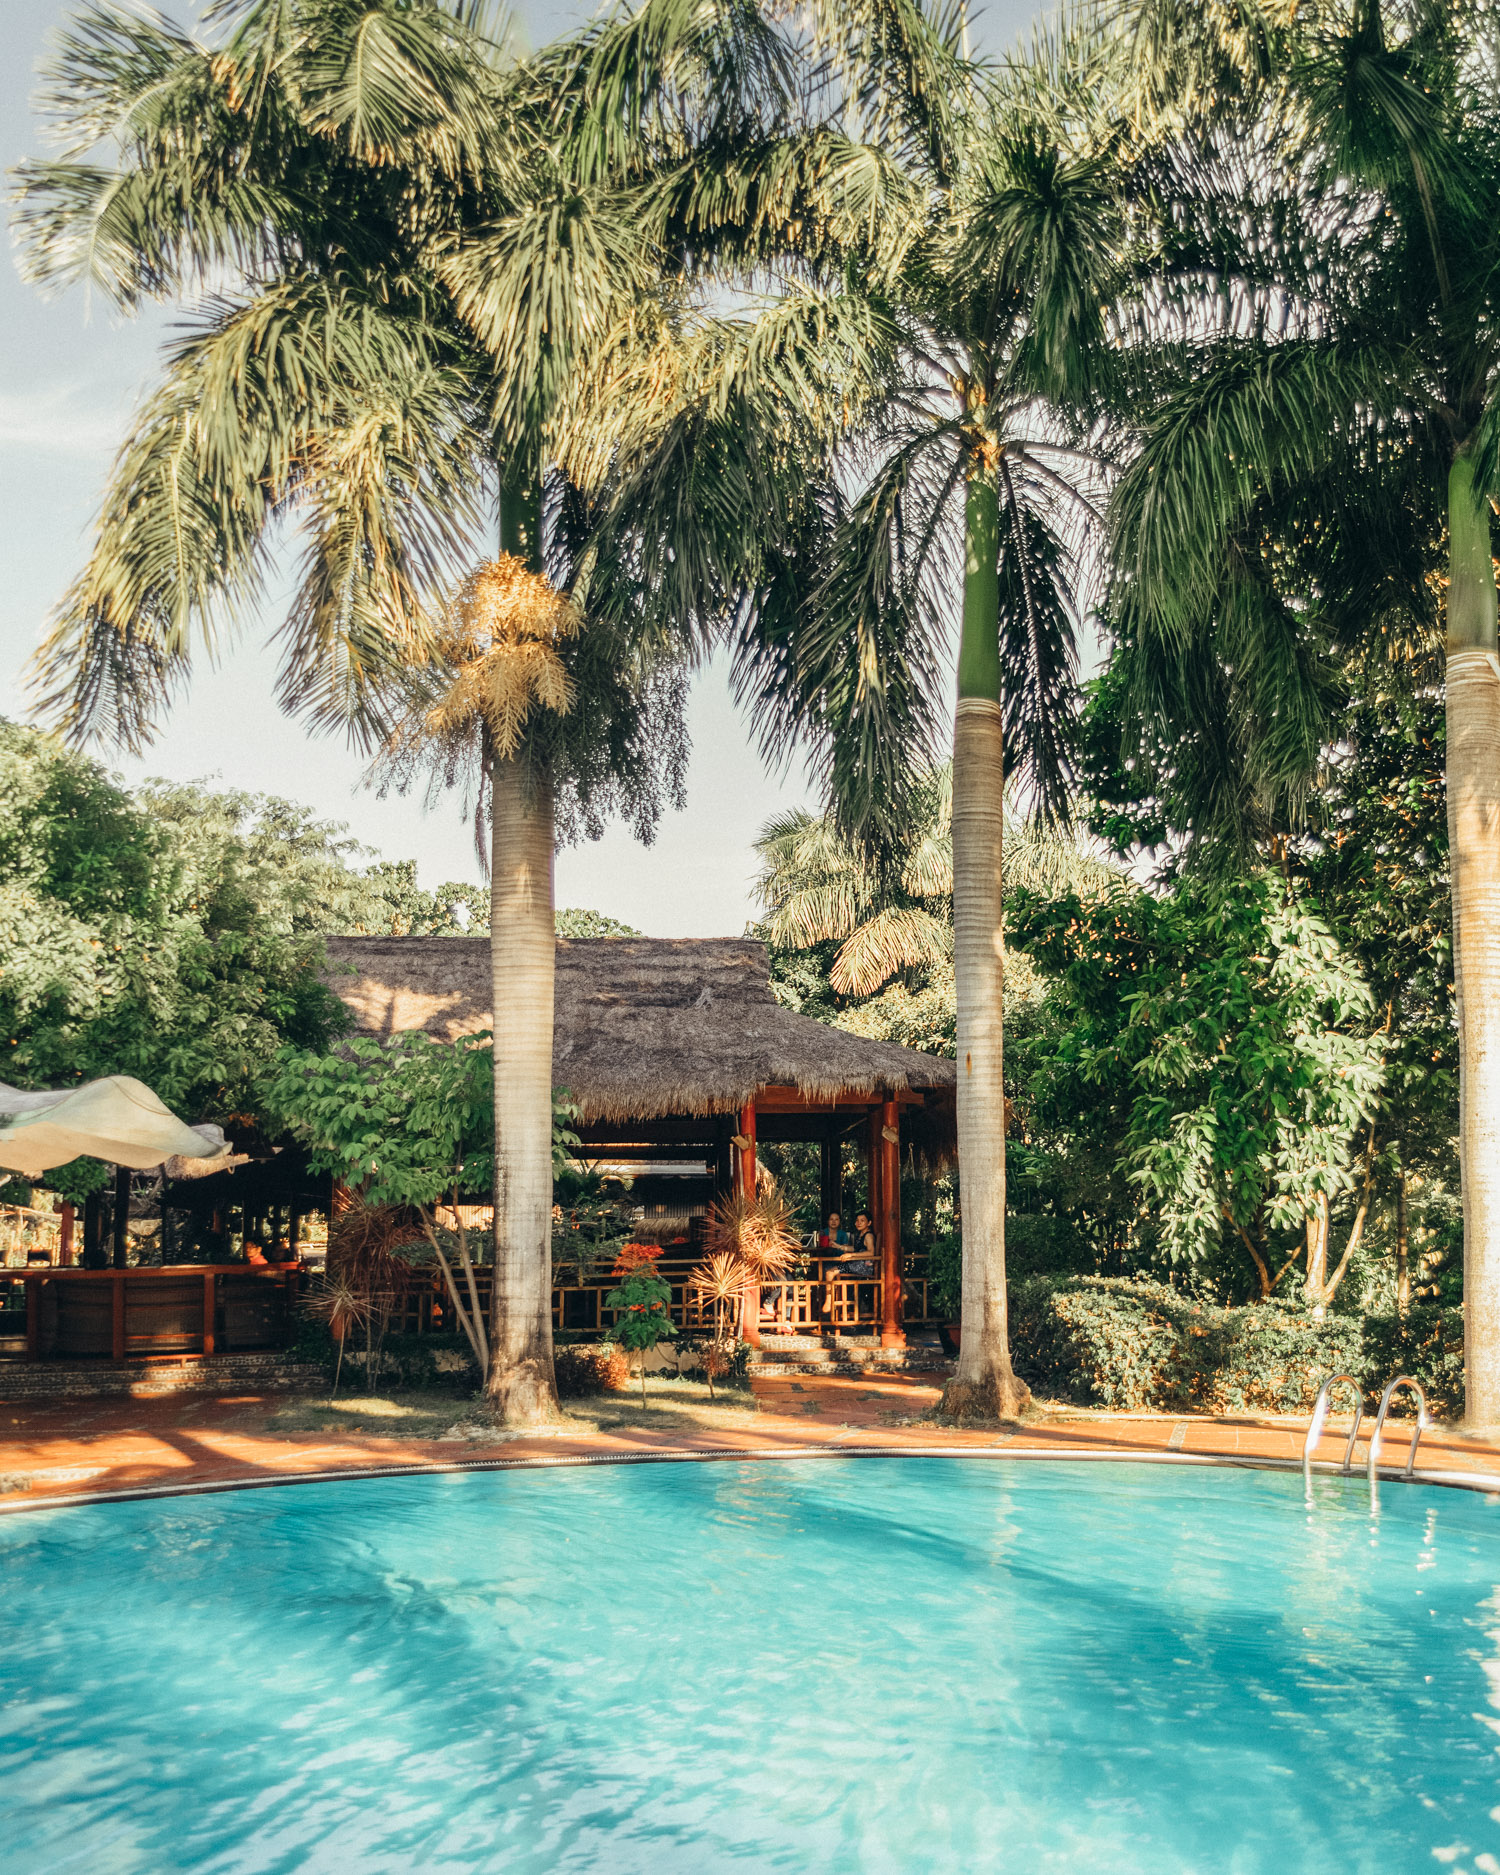 Vietstar Resort & Spa in Phu Yen